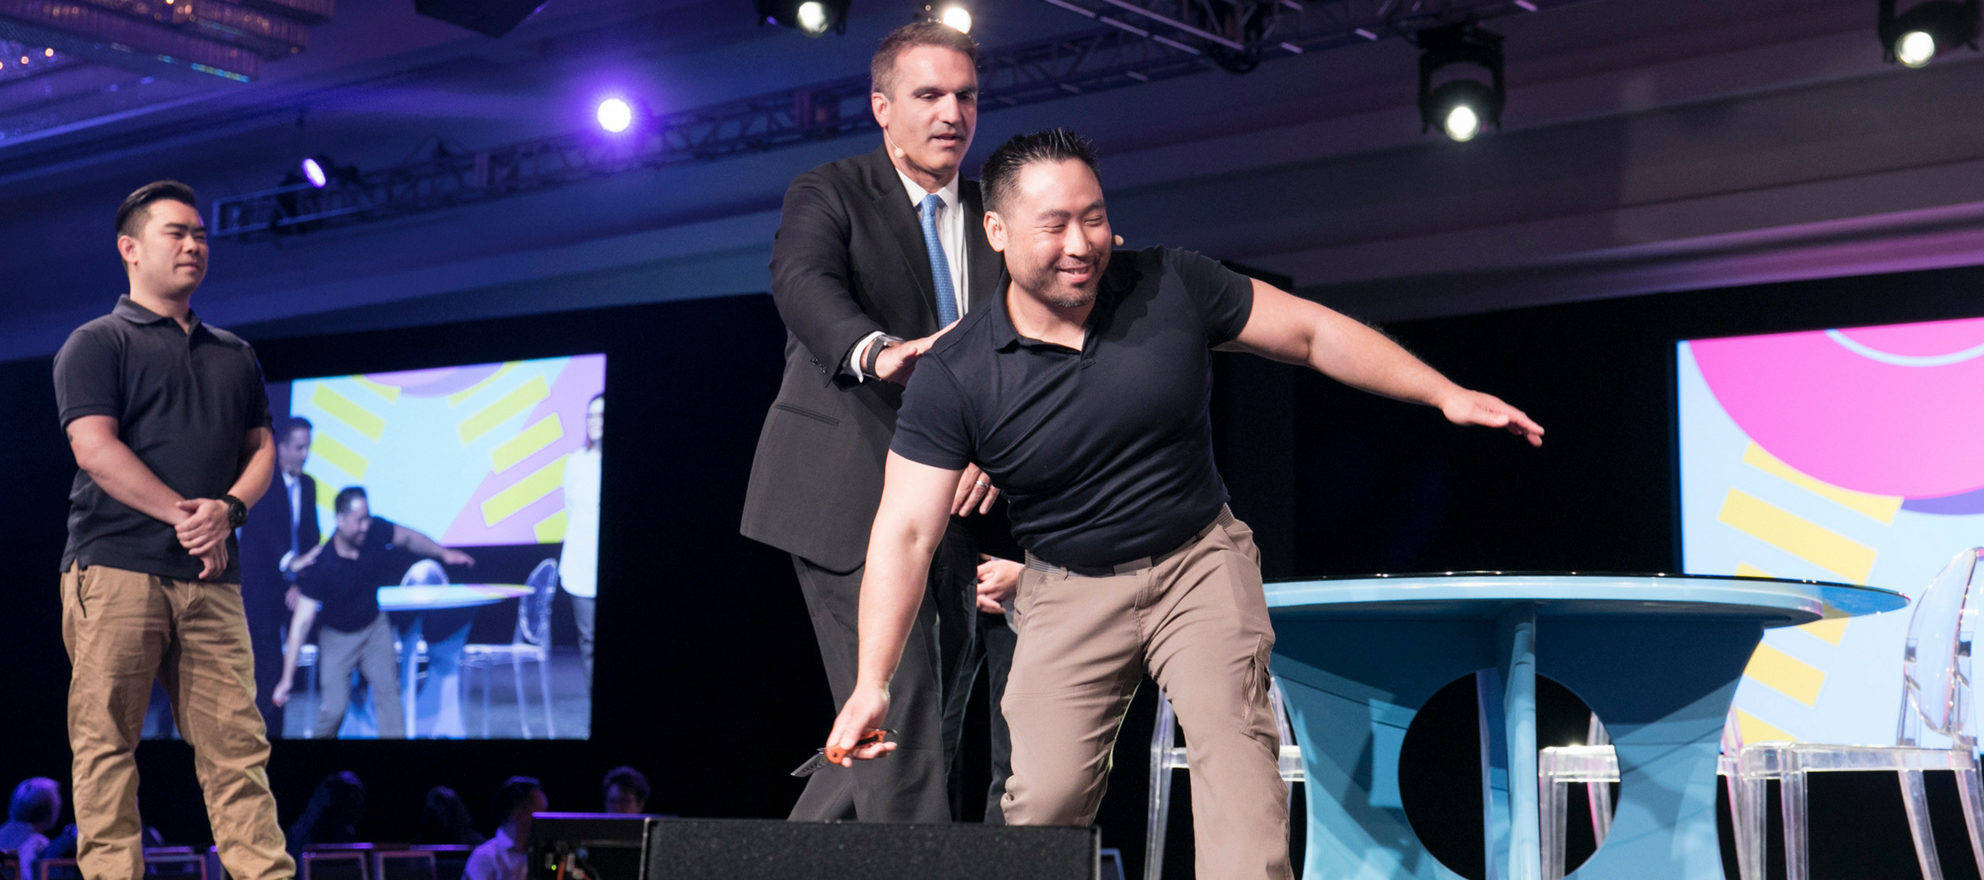 ICSF 18, self-defense